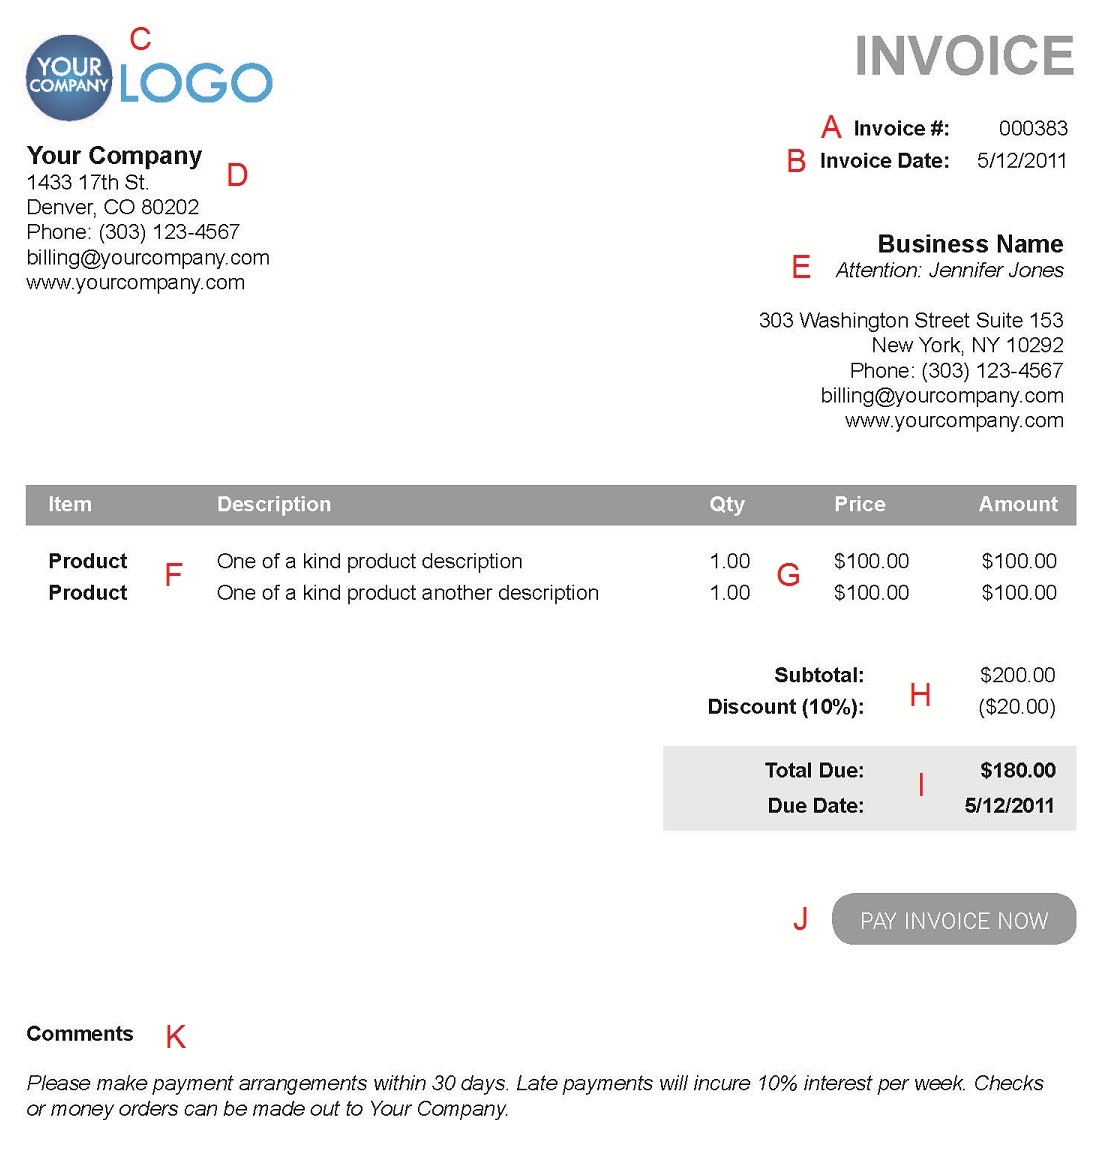 Late Fees On Invoices